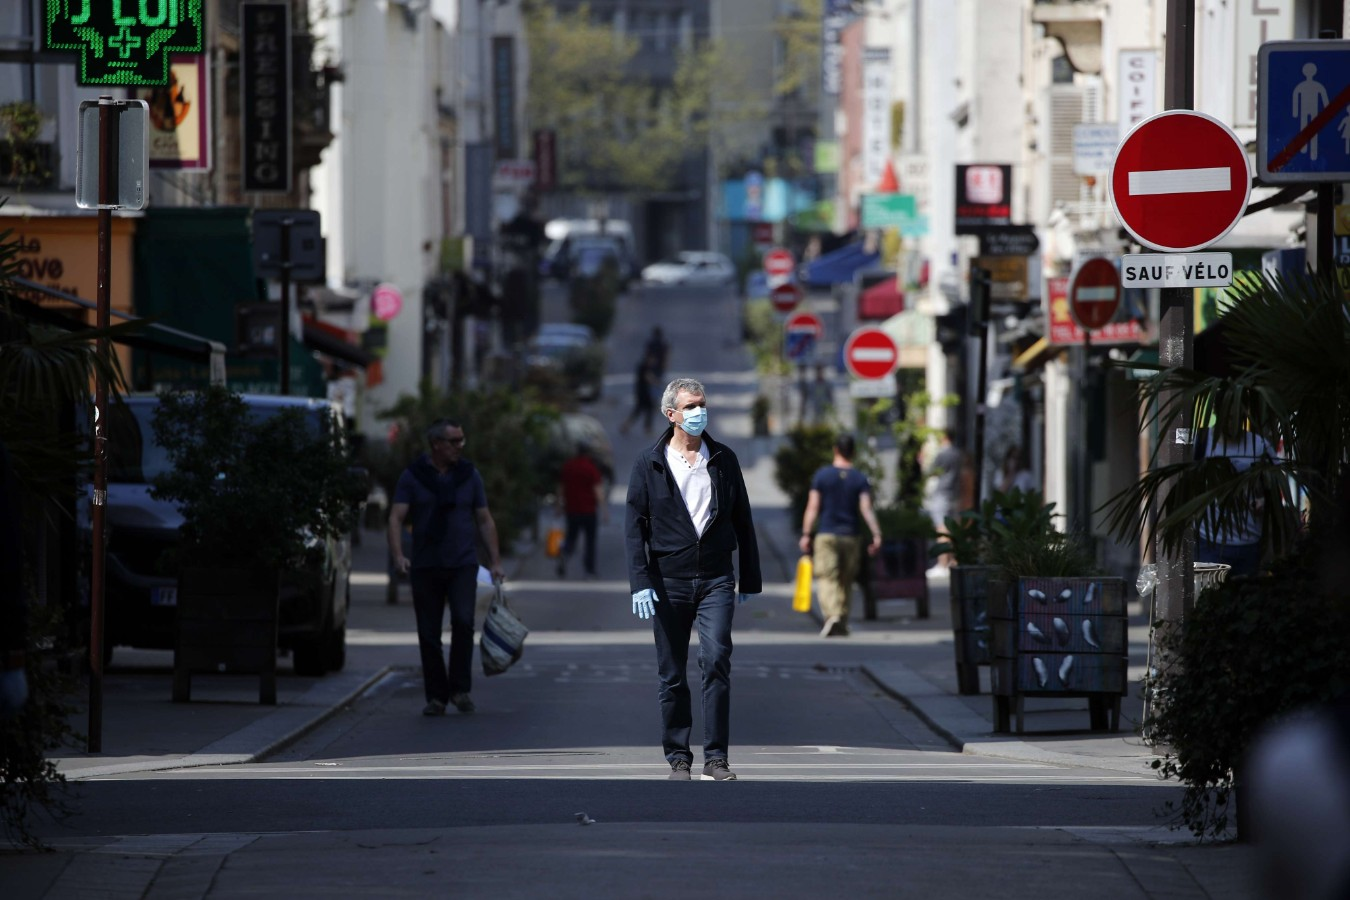 A man wearing protective mask walks in the middle of the street in Paris Friday April 10, 2020, during a nationwide confinement to counter the COVID-19. (AP)